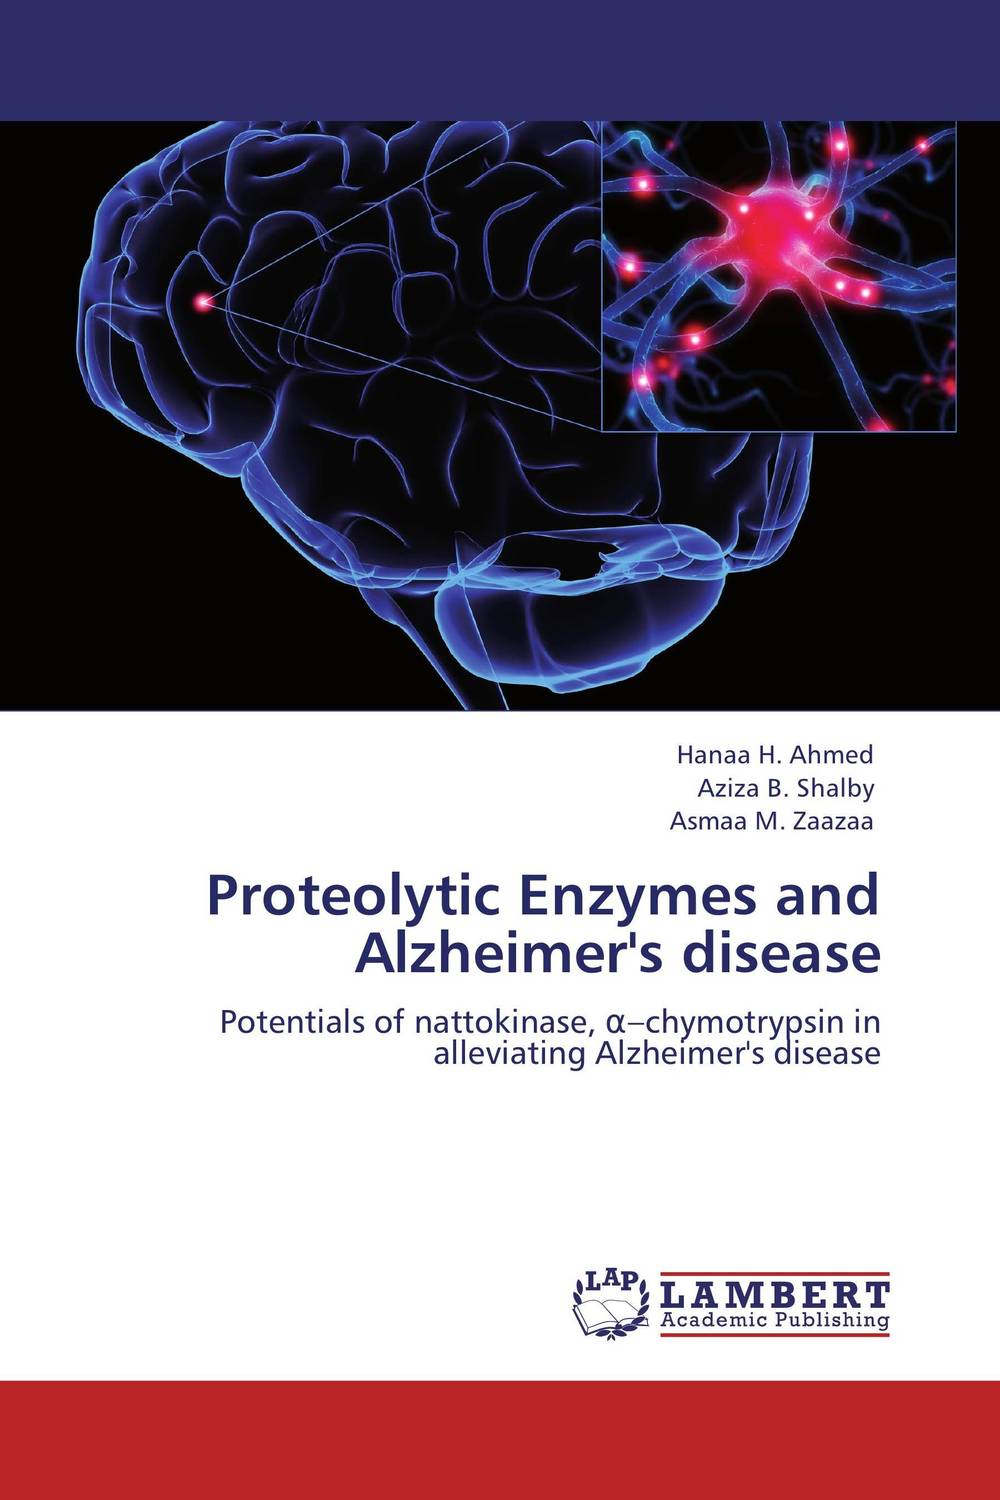 Proteolytic Enzymes and Alzheimer's disease methionine supplementation alters beta amyloid levels in brain cells